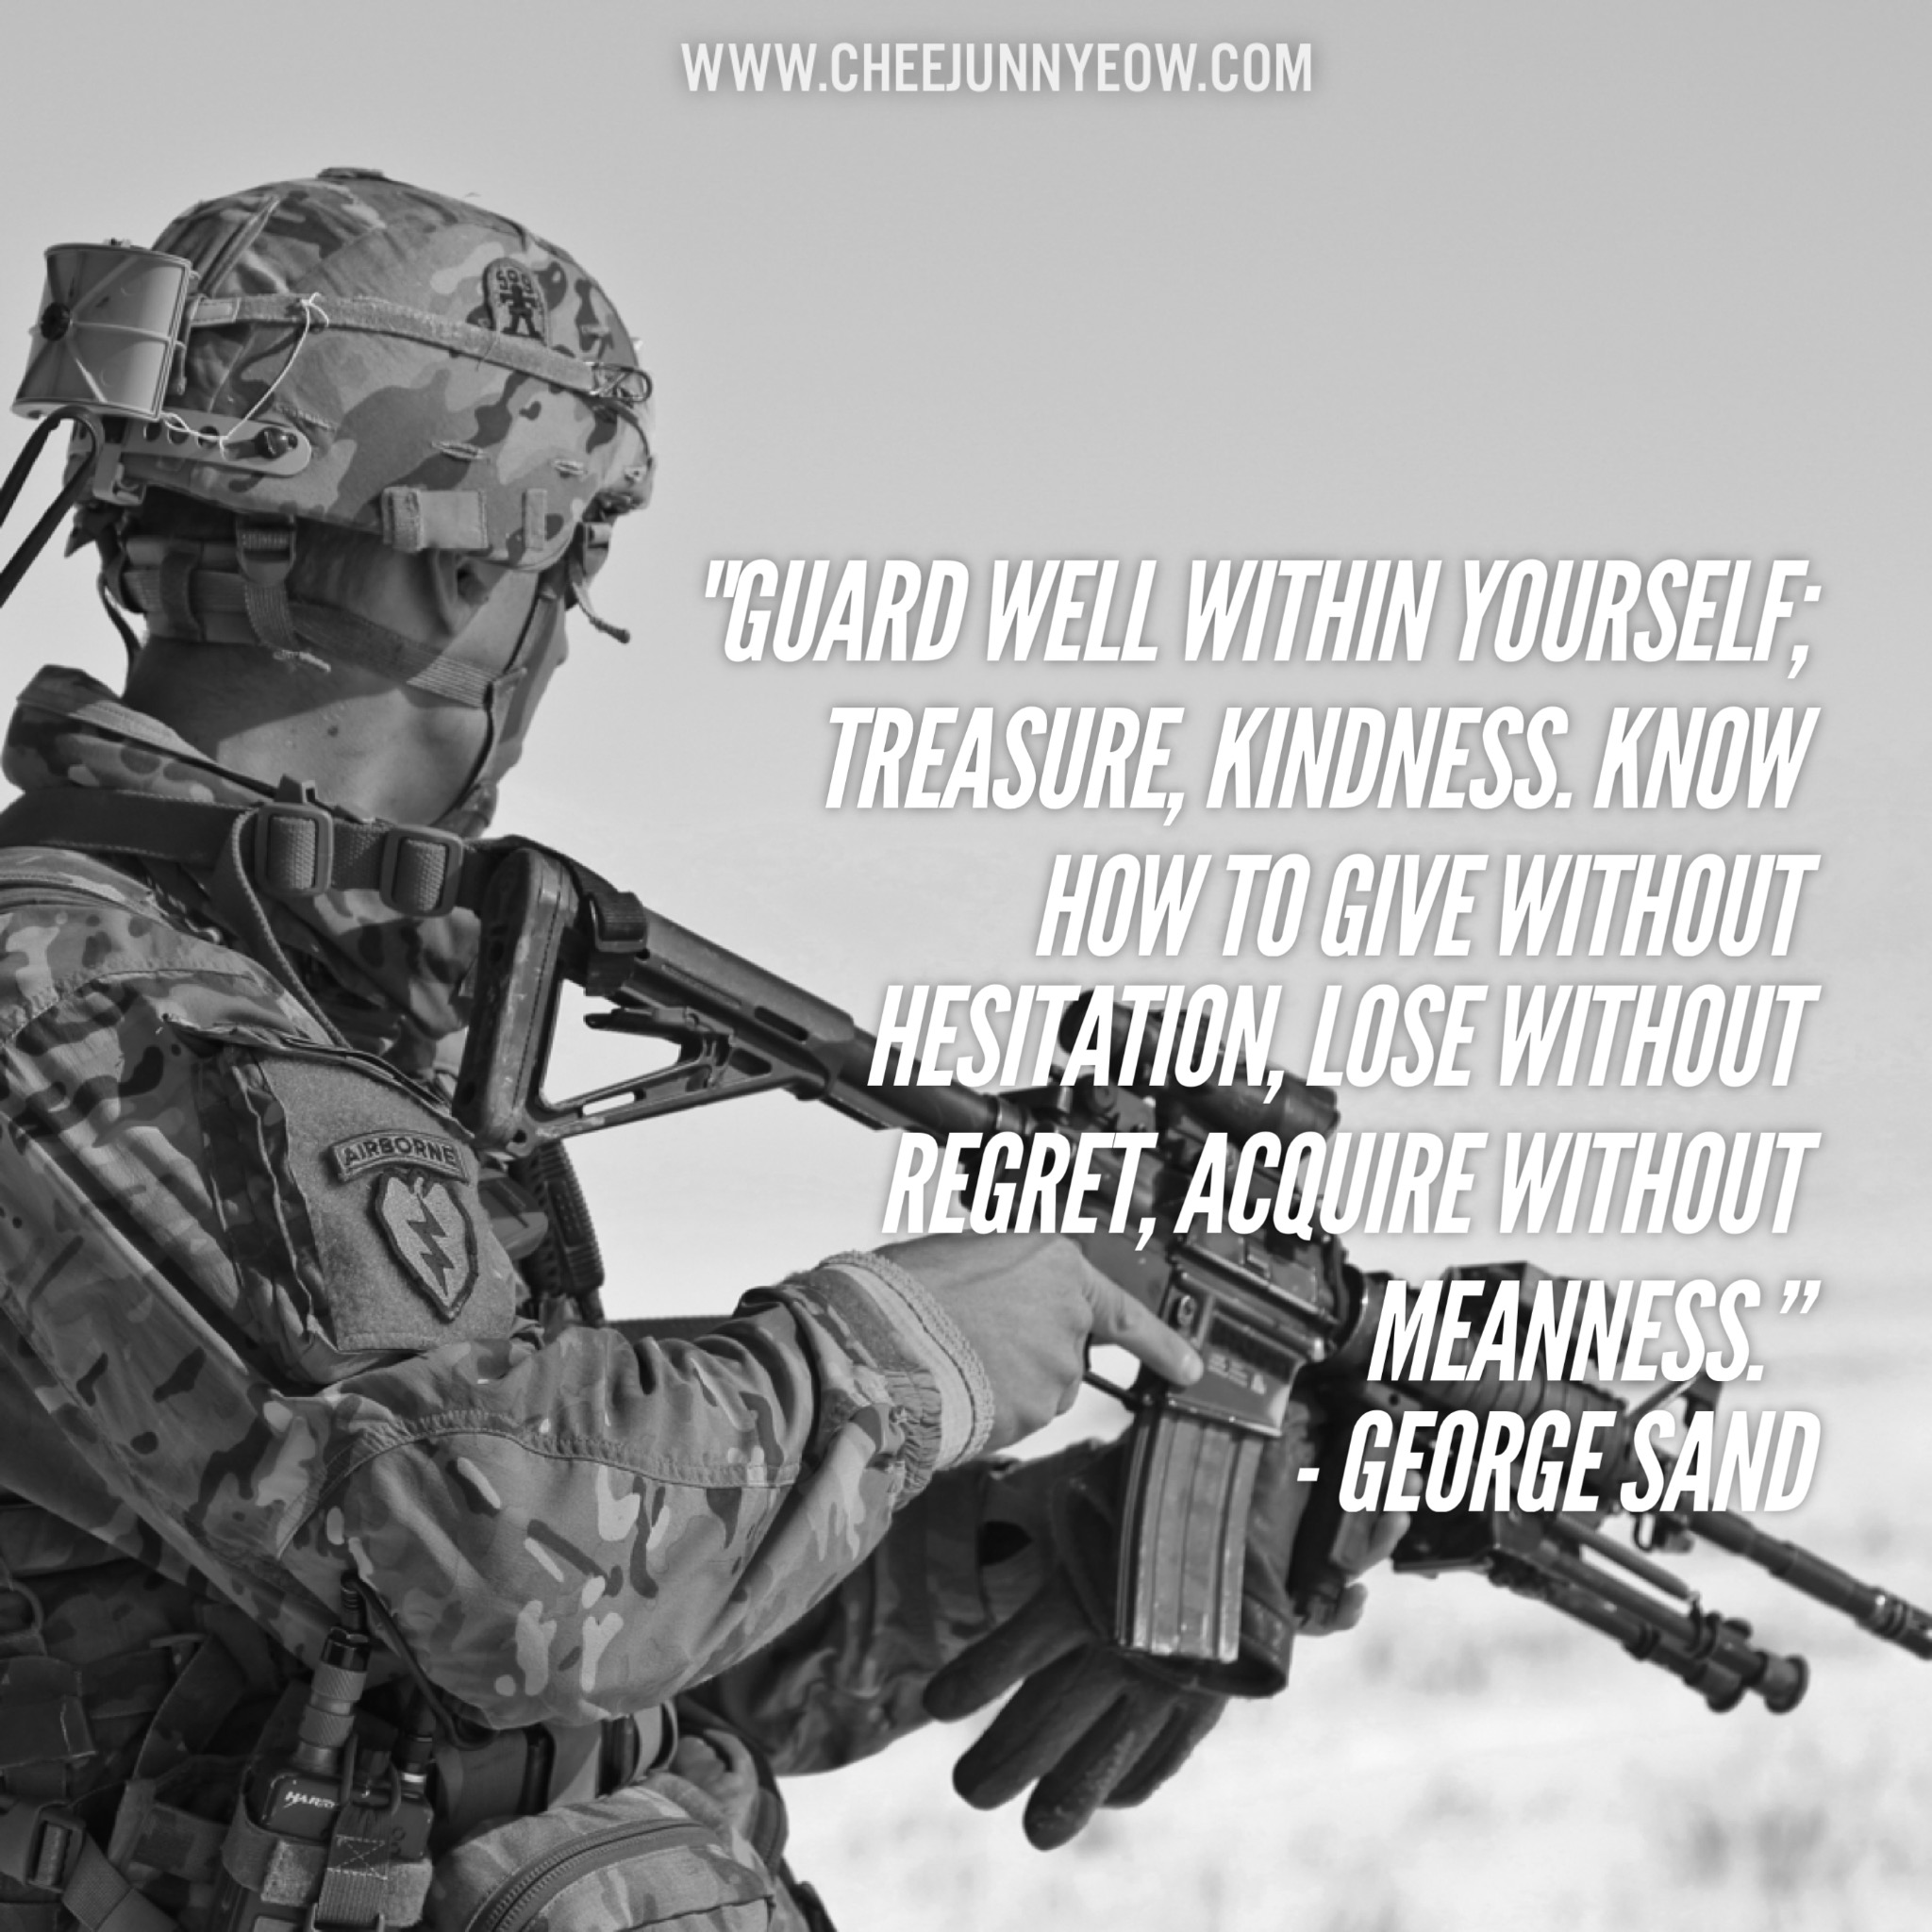 guard well within yourself